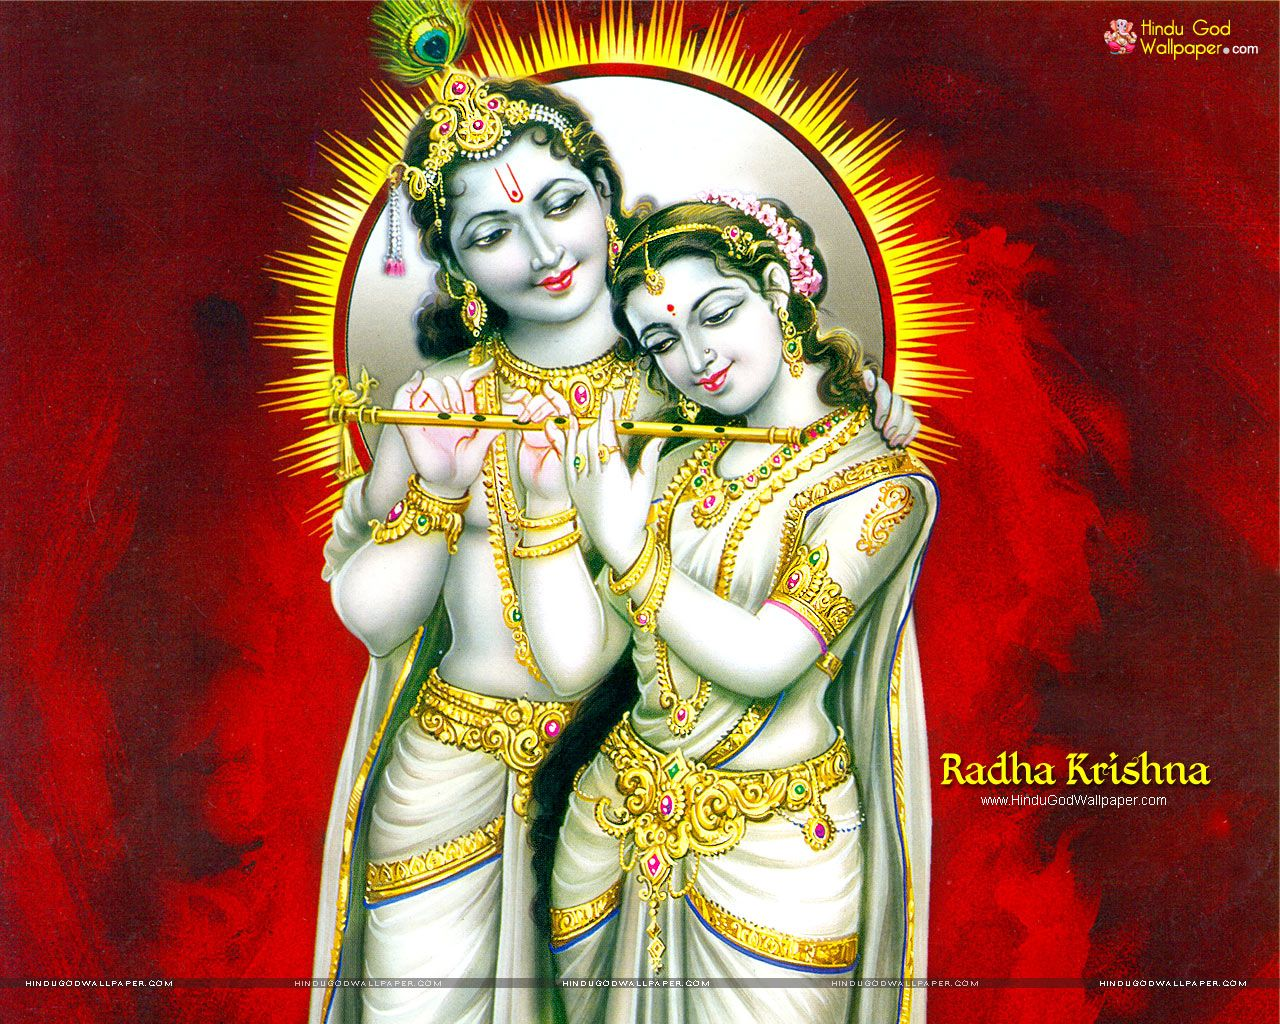 Hd wallpaper krishna and radha - Radha Krishna Hd Wallpapers Full Size Download